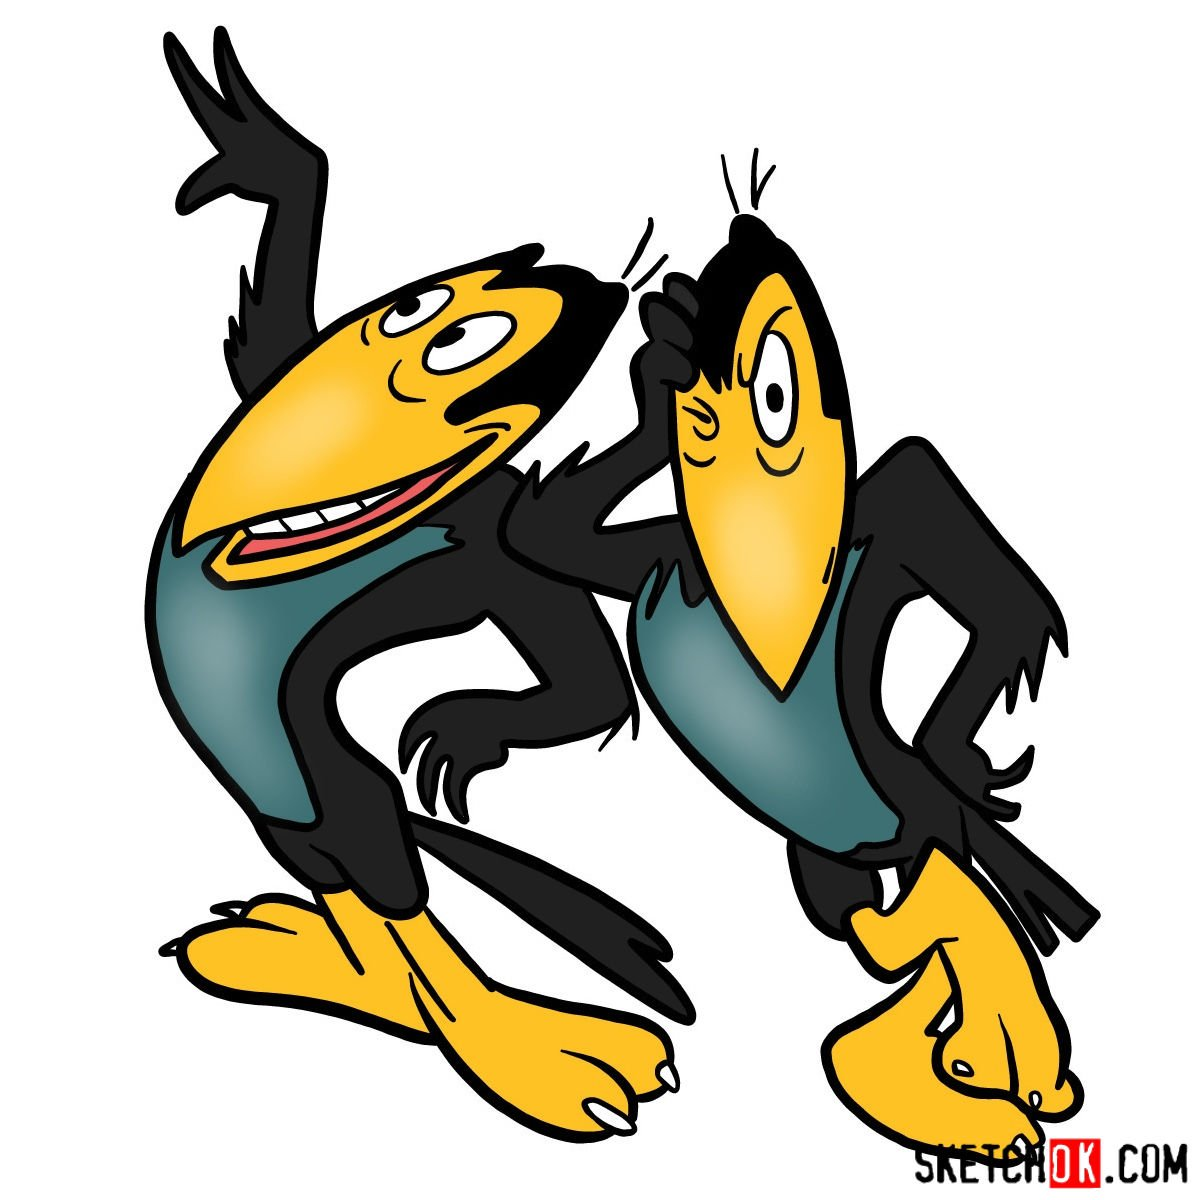 How to draw Heckle and Jeckle